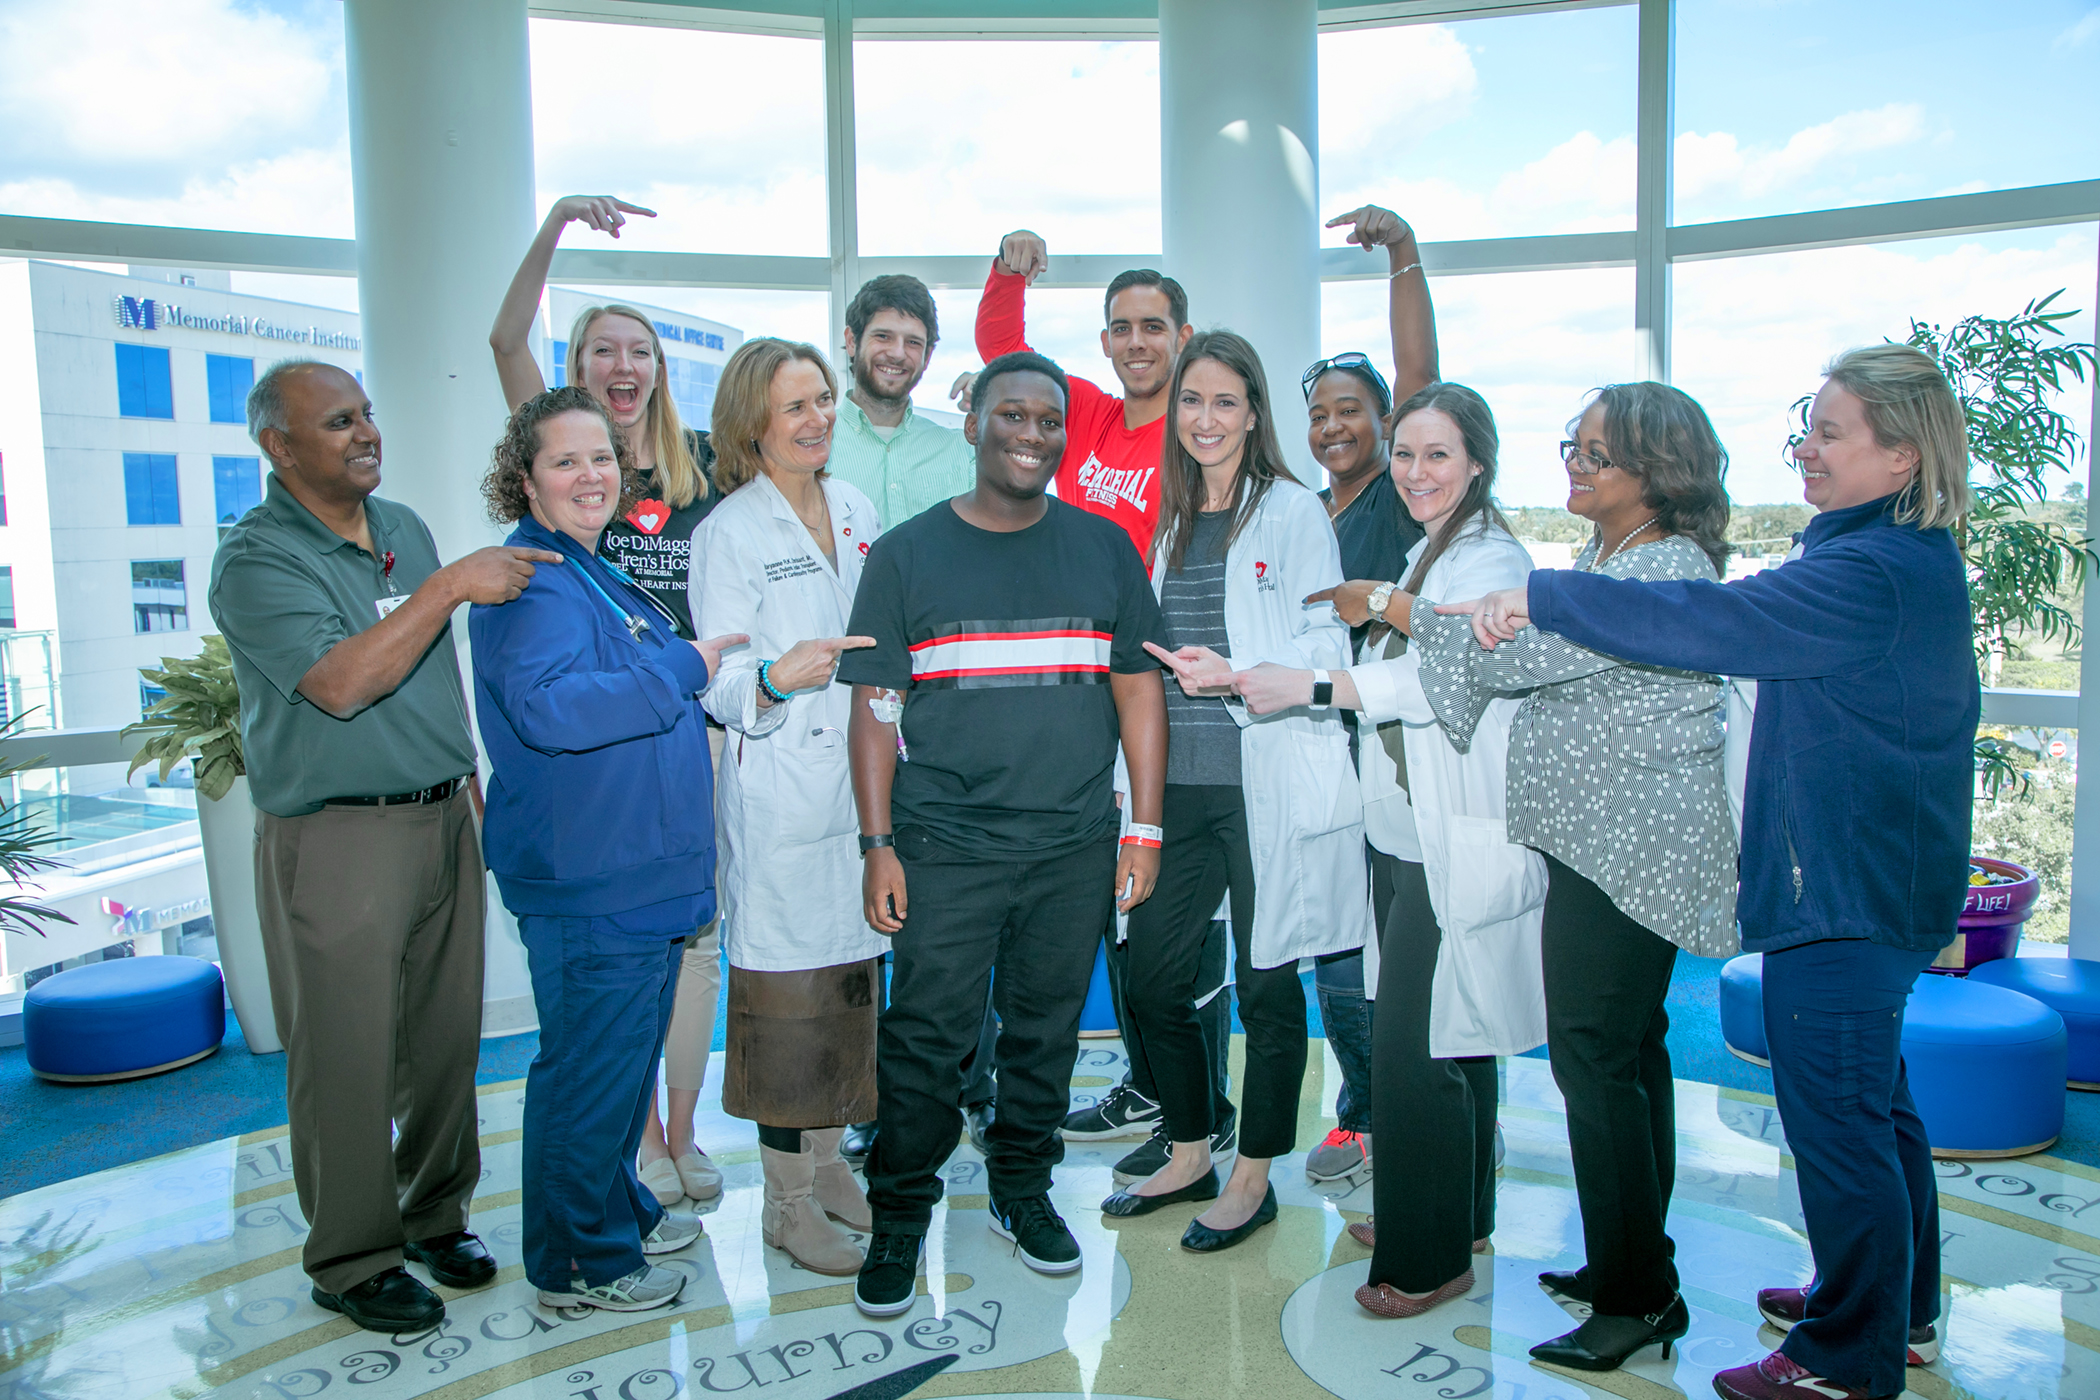 50th Heart Transplant Timothy with members of the Joe DiMaggo Childrens hospital